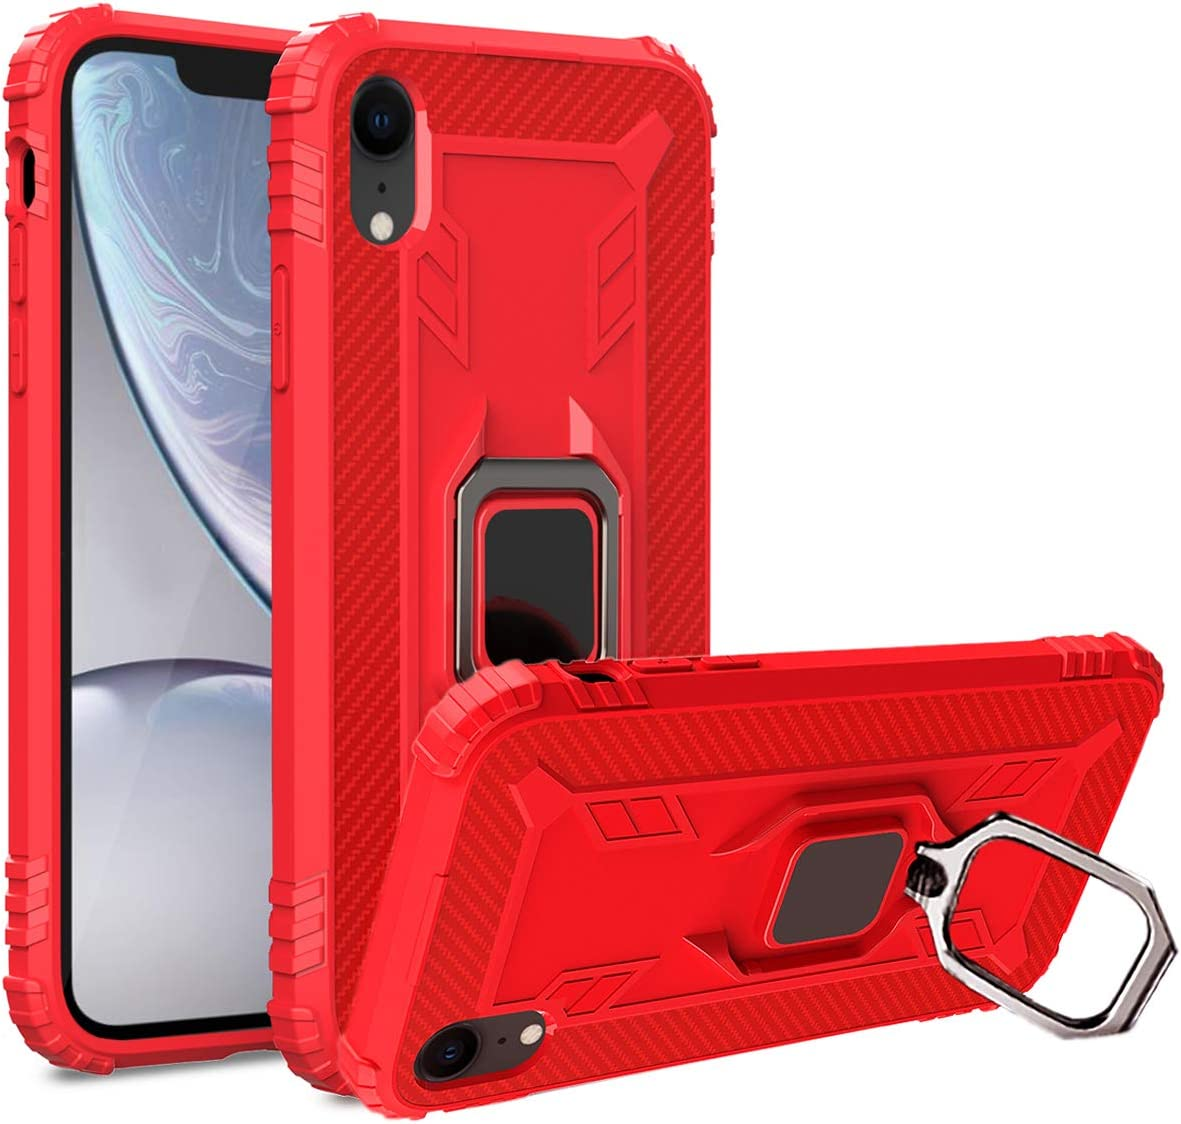 iPhone XR Case Military Grade Drop Impact Tested Armor 360 Metal Rotating Ring Kickstand Holder Built-in Car Mount Silicone Shockproof Anti-Scratch Full Body Protective Cover for XR (Red)